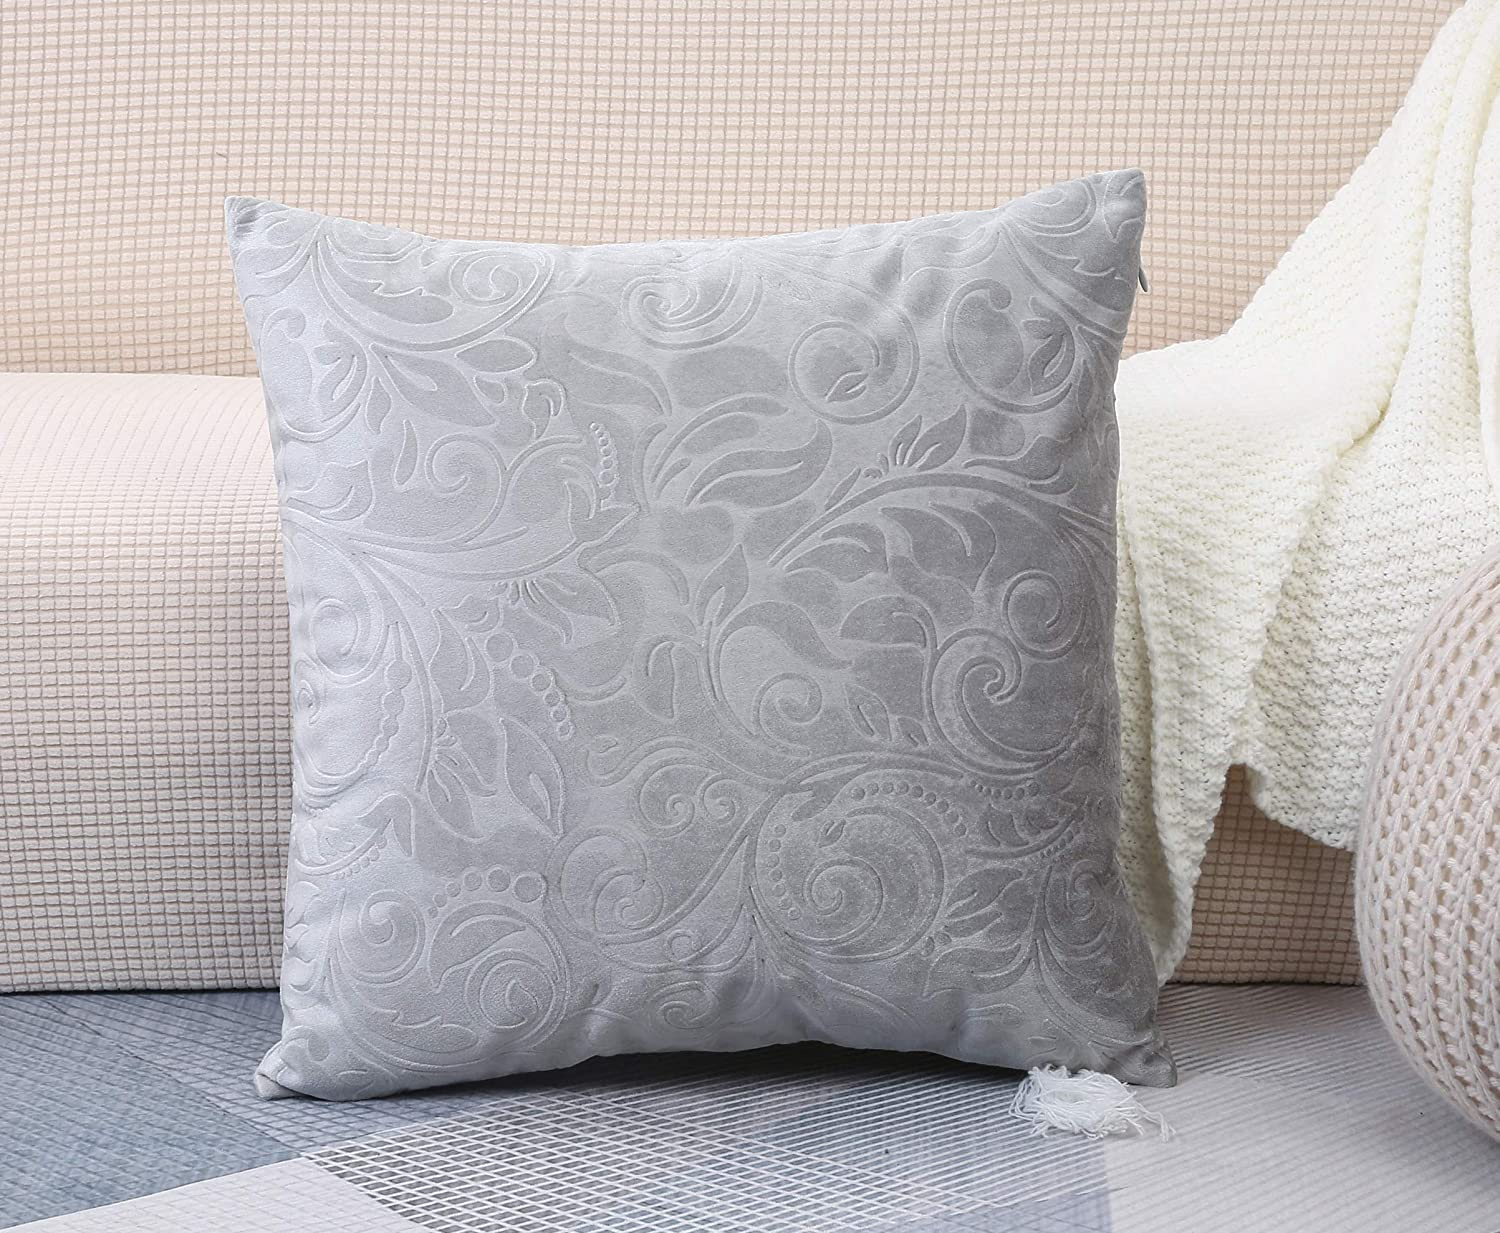 TangDepot Heavy Velvet Embossing Throw Pillow Cover, Classis Floral Anaglyph Velvet Fabric, Decorative Pillow Cover, Indoor/Outdoor Pillows Shell, Cushion Cover - (12